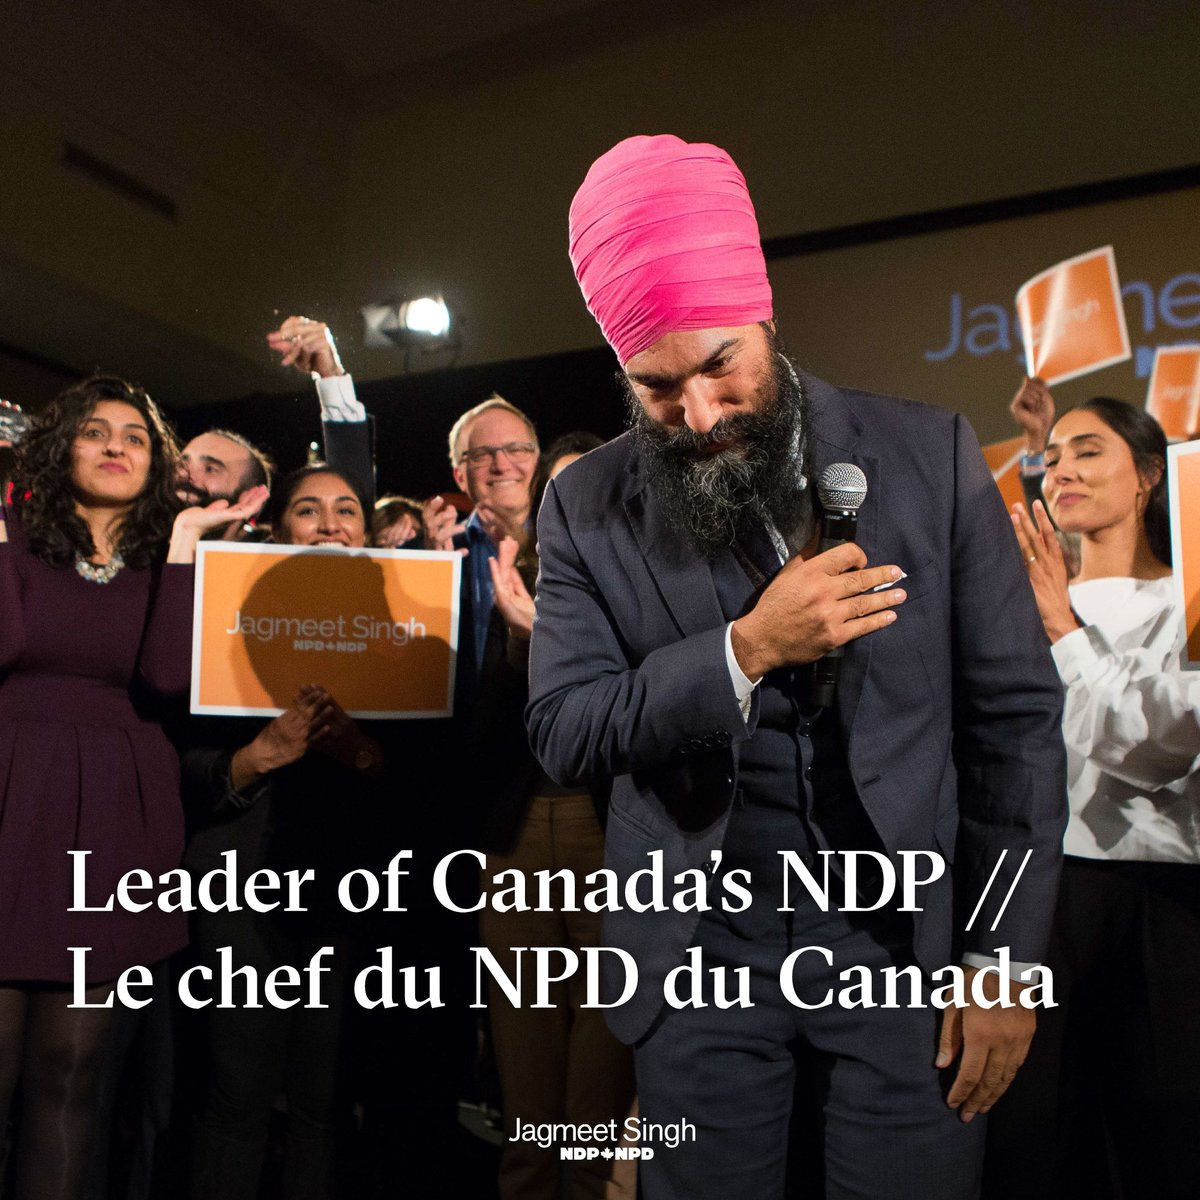 Jagmeet Singh celebrating after his victory. Photo courtesy: Twitter/@theJagmeetSingh